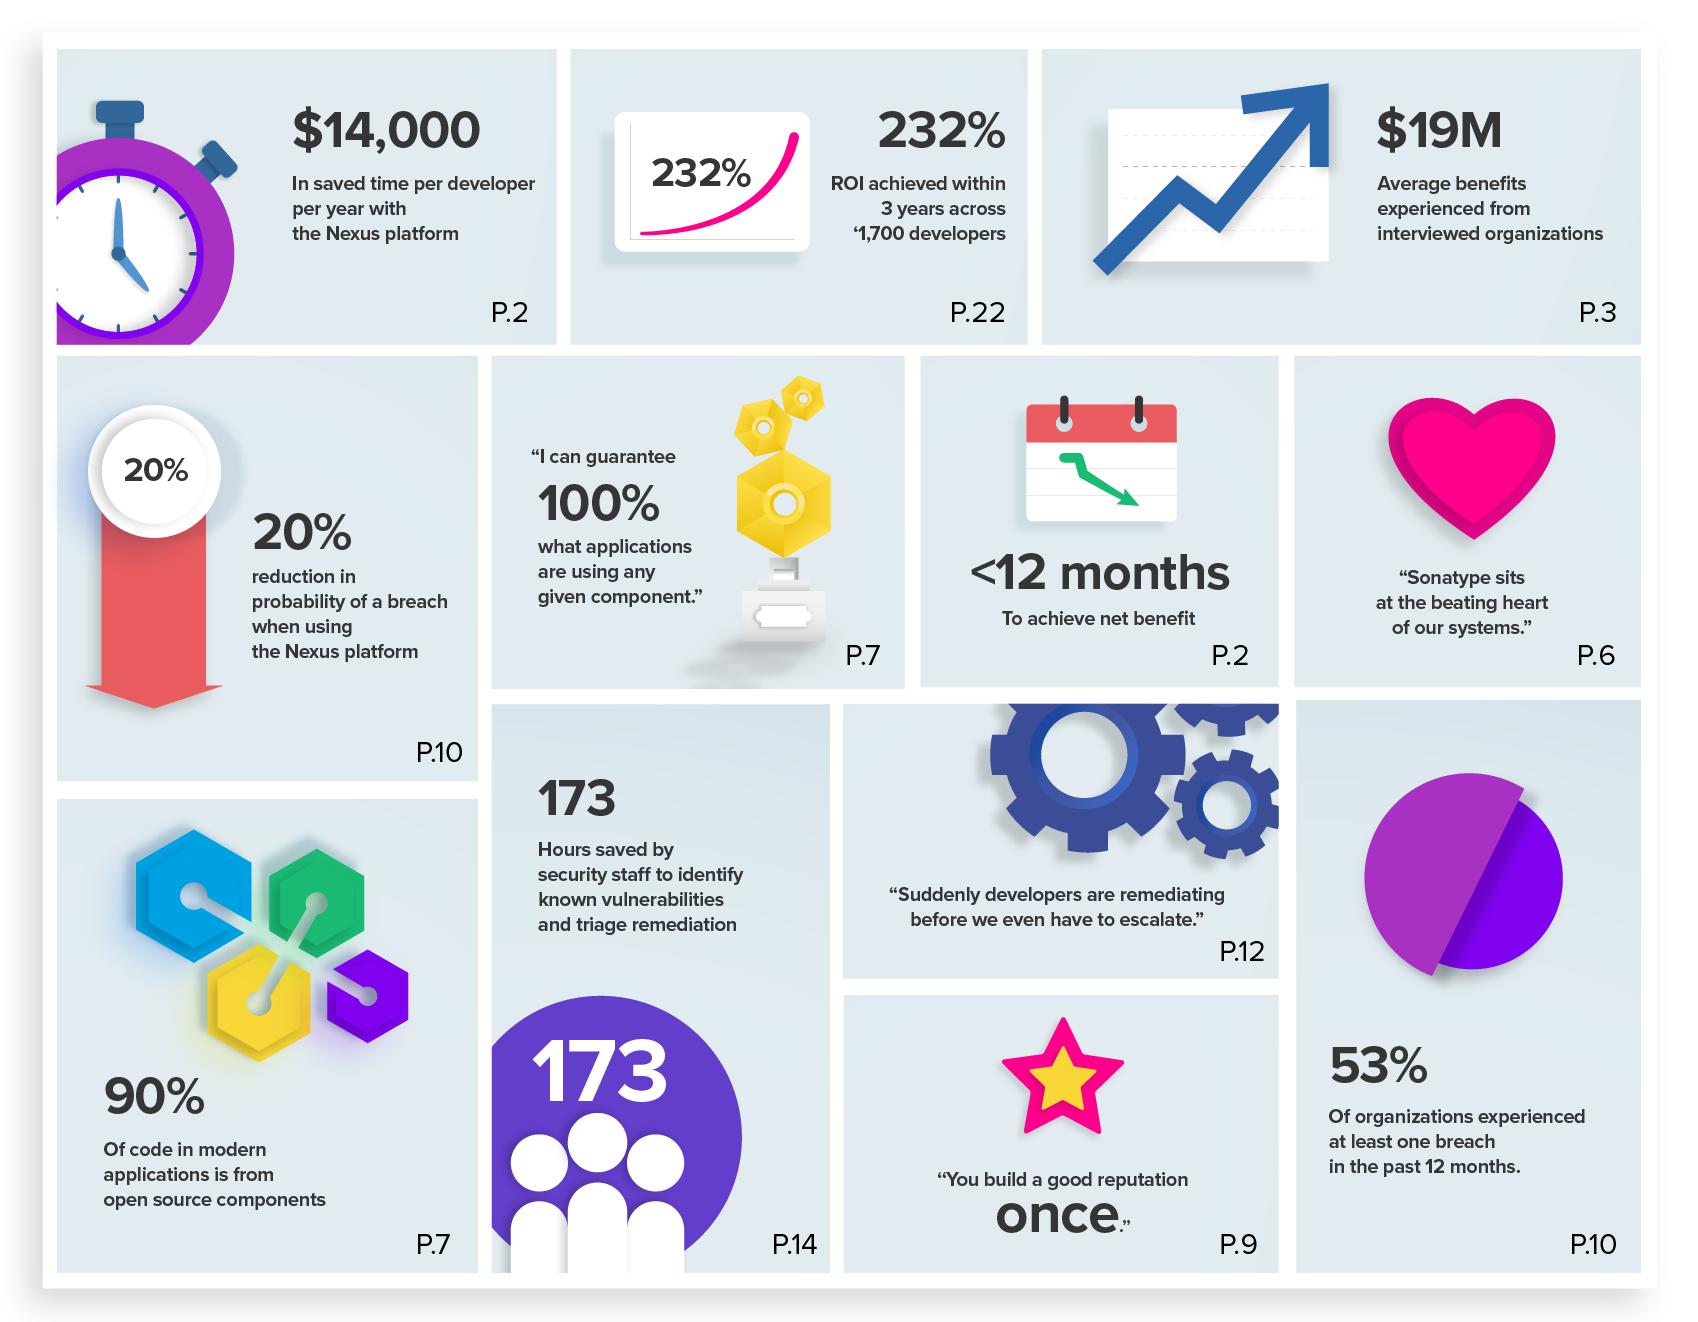 SON_Forrester_report_infographic@2x-2